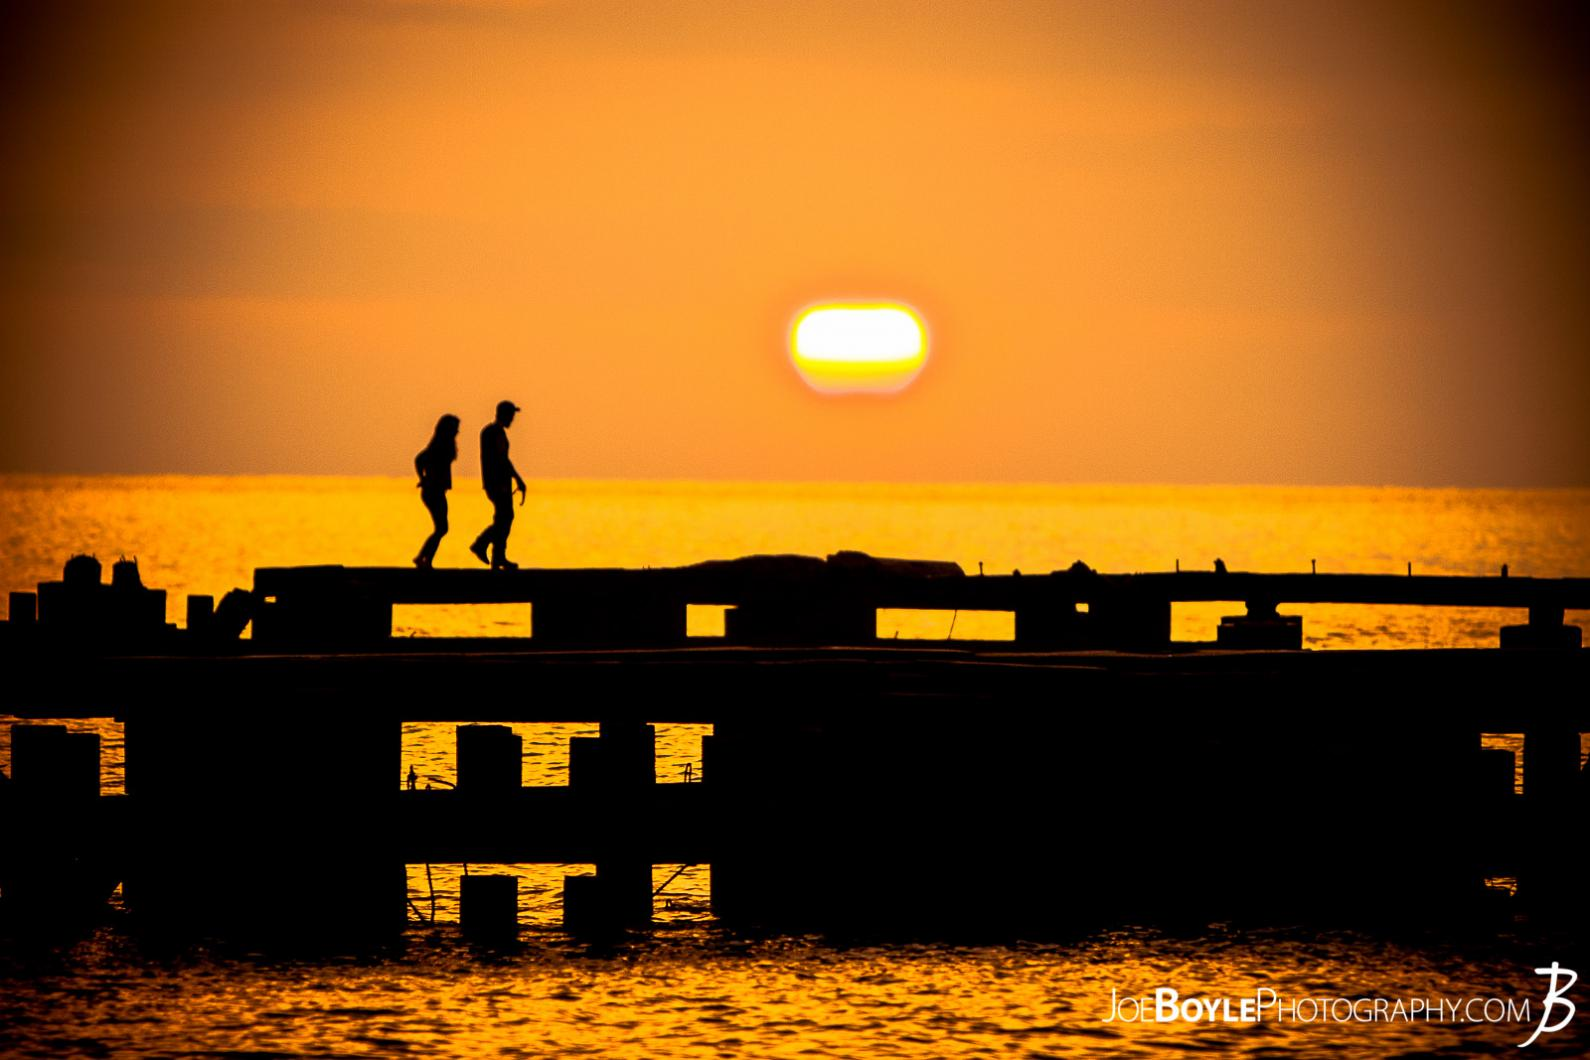 sunset-in-cleveland-off-of-lake-erie-people-on-a-pier